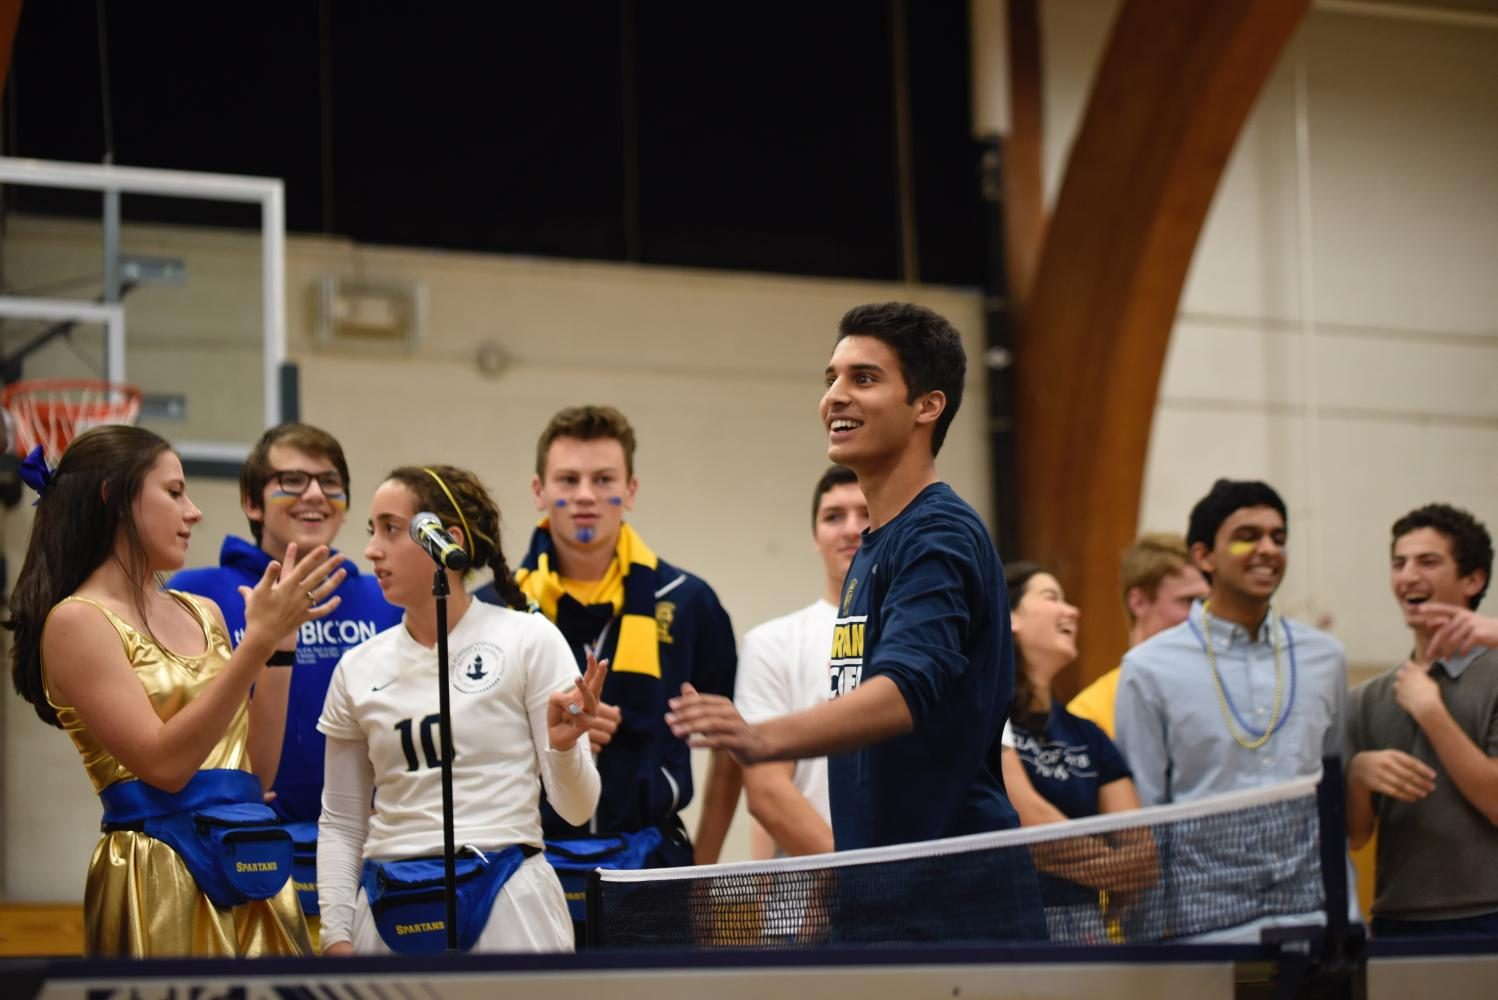 Husaam Qureishy celebrates winning a point in the ping pong championship.